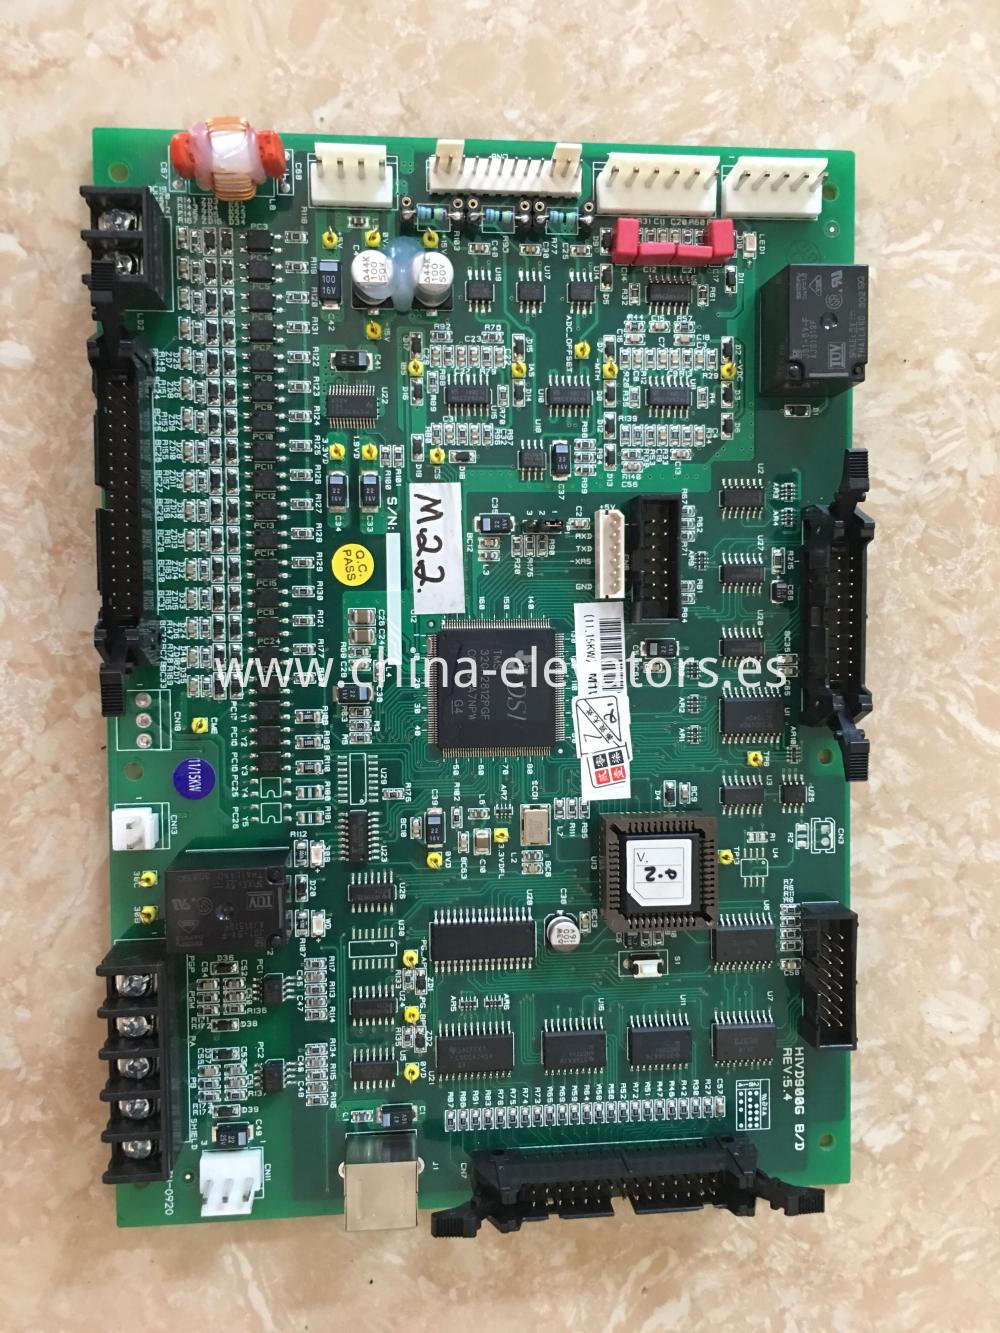 HIVD900G Inverter Mainboard for Hyundai Elevator